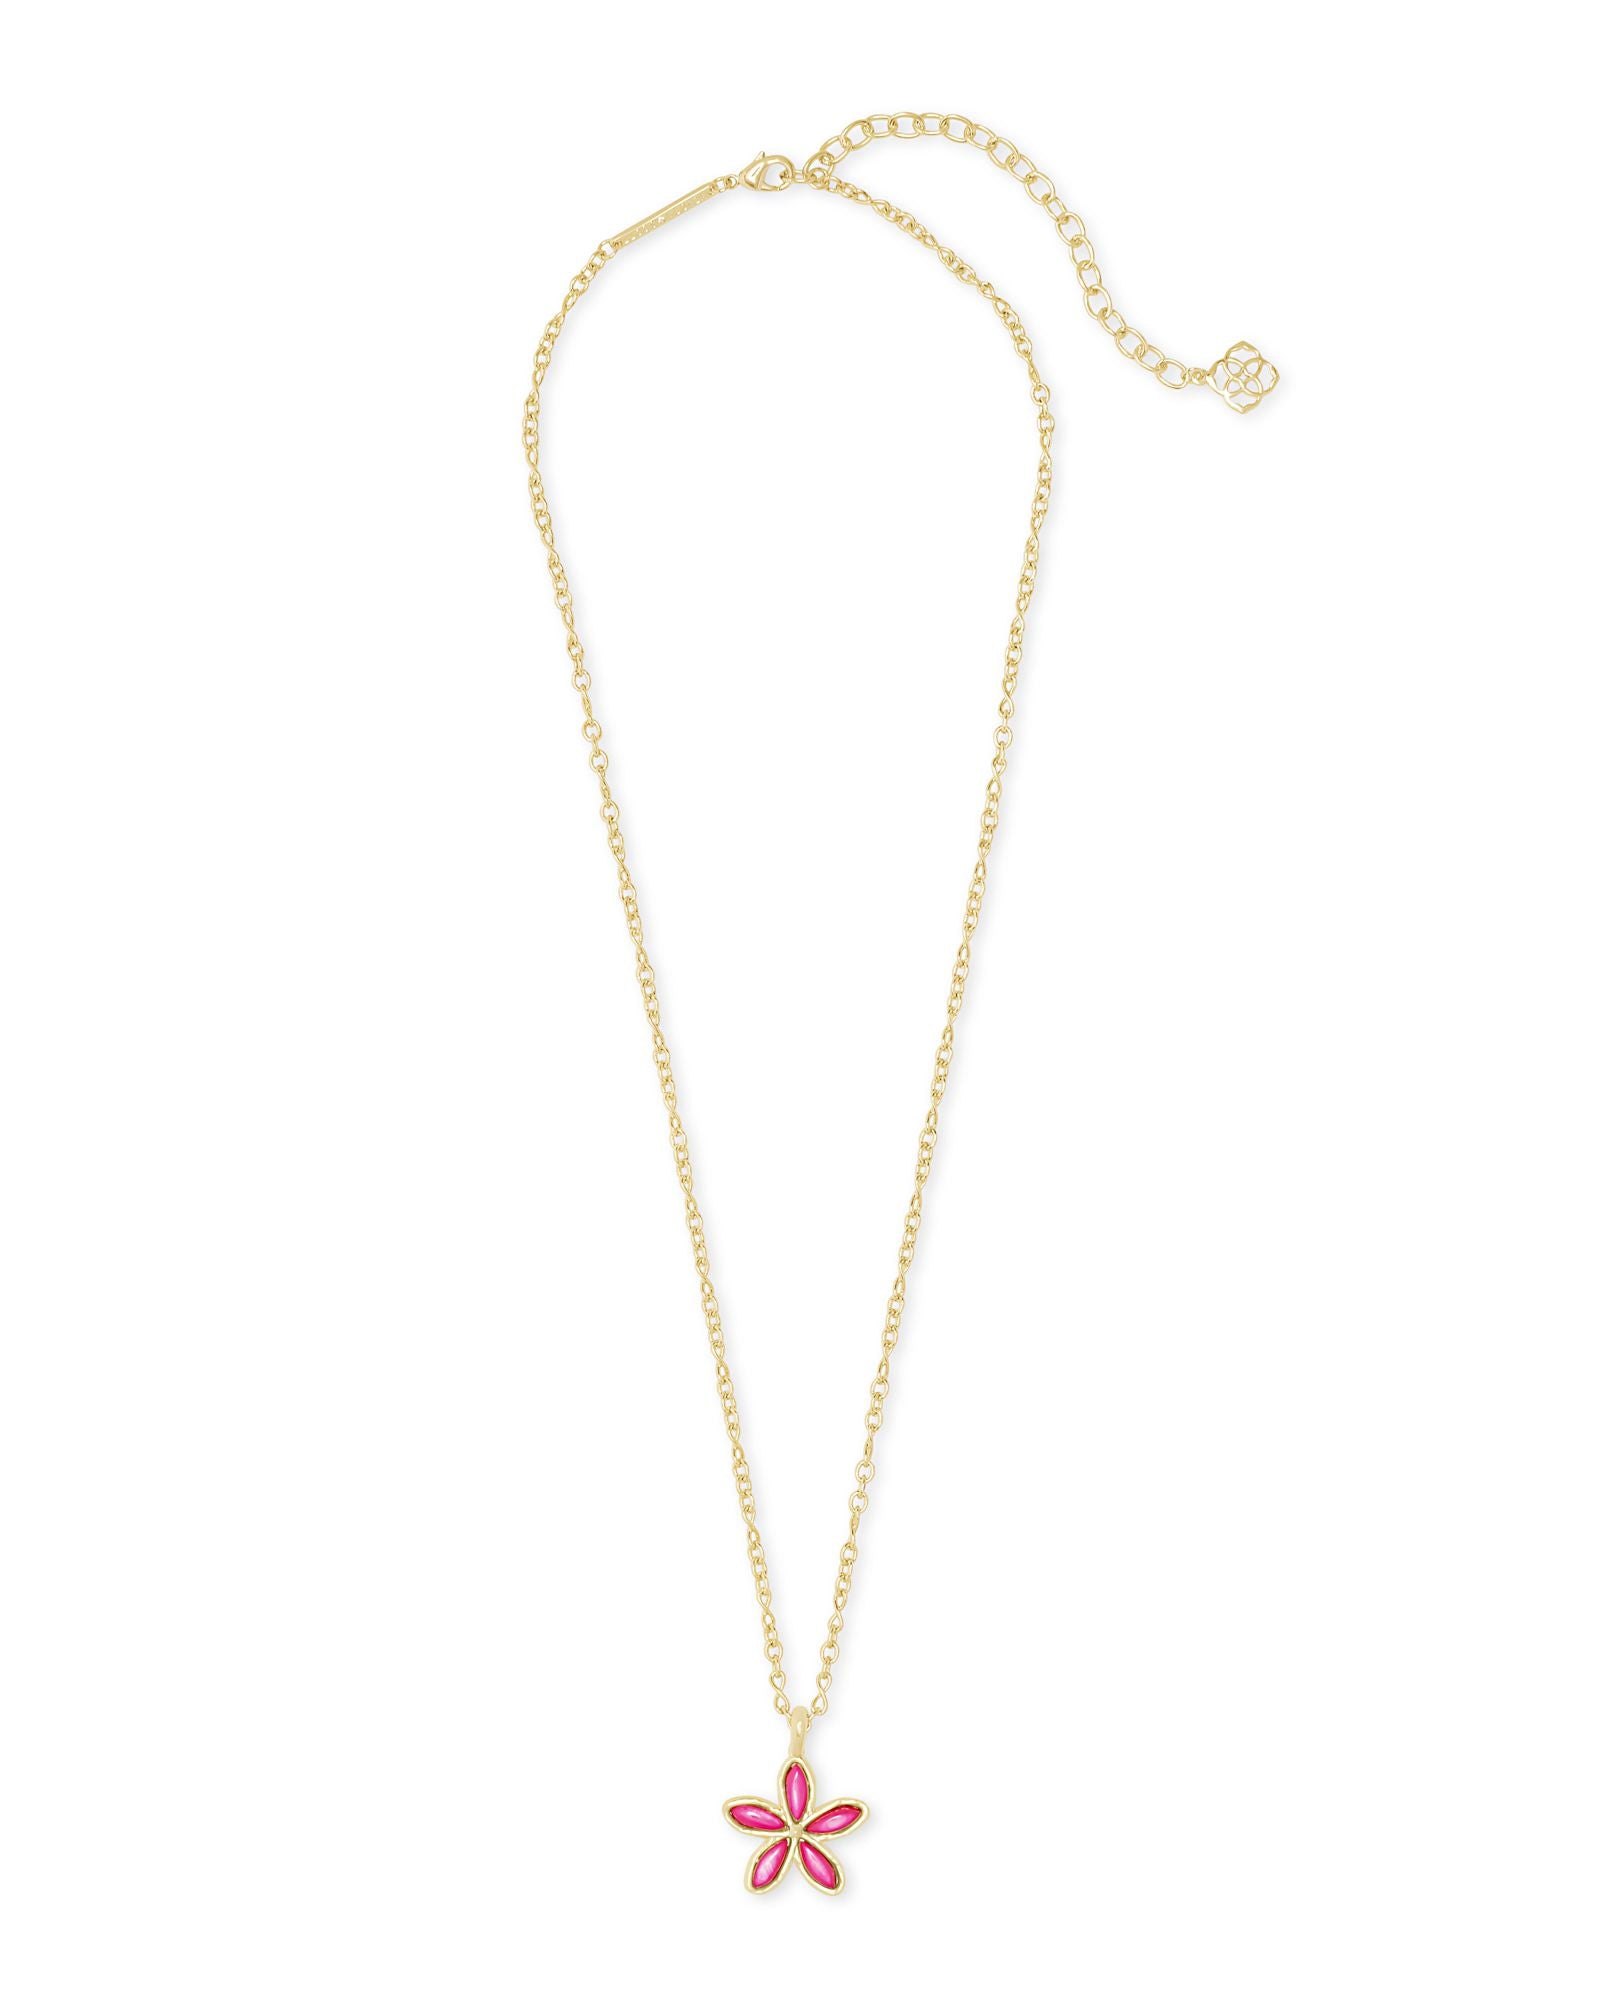 Kyla Flower Necklace in Gold Raspberry Mother of Pearl